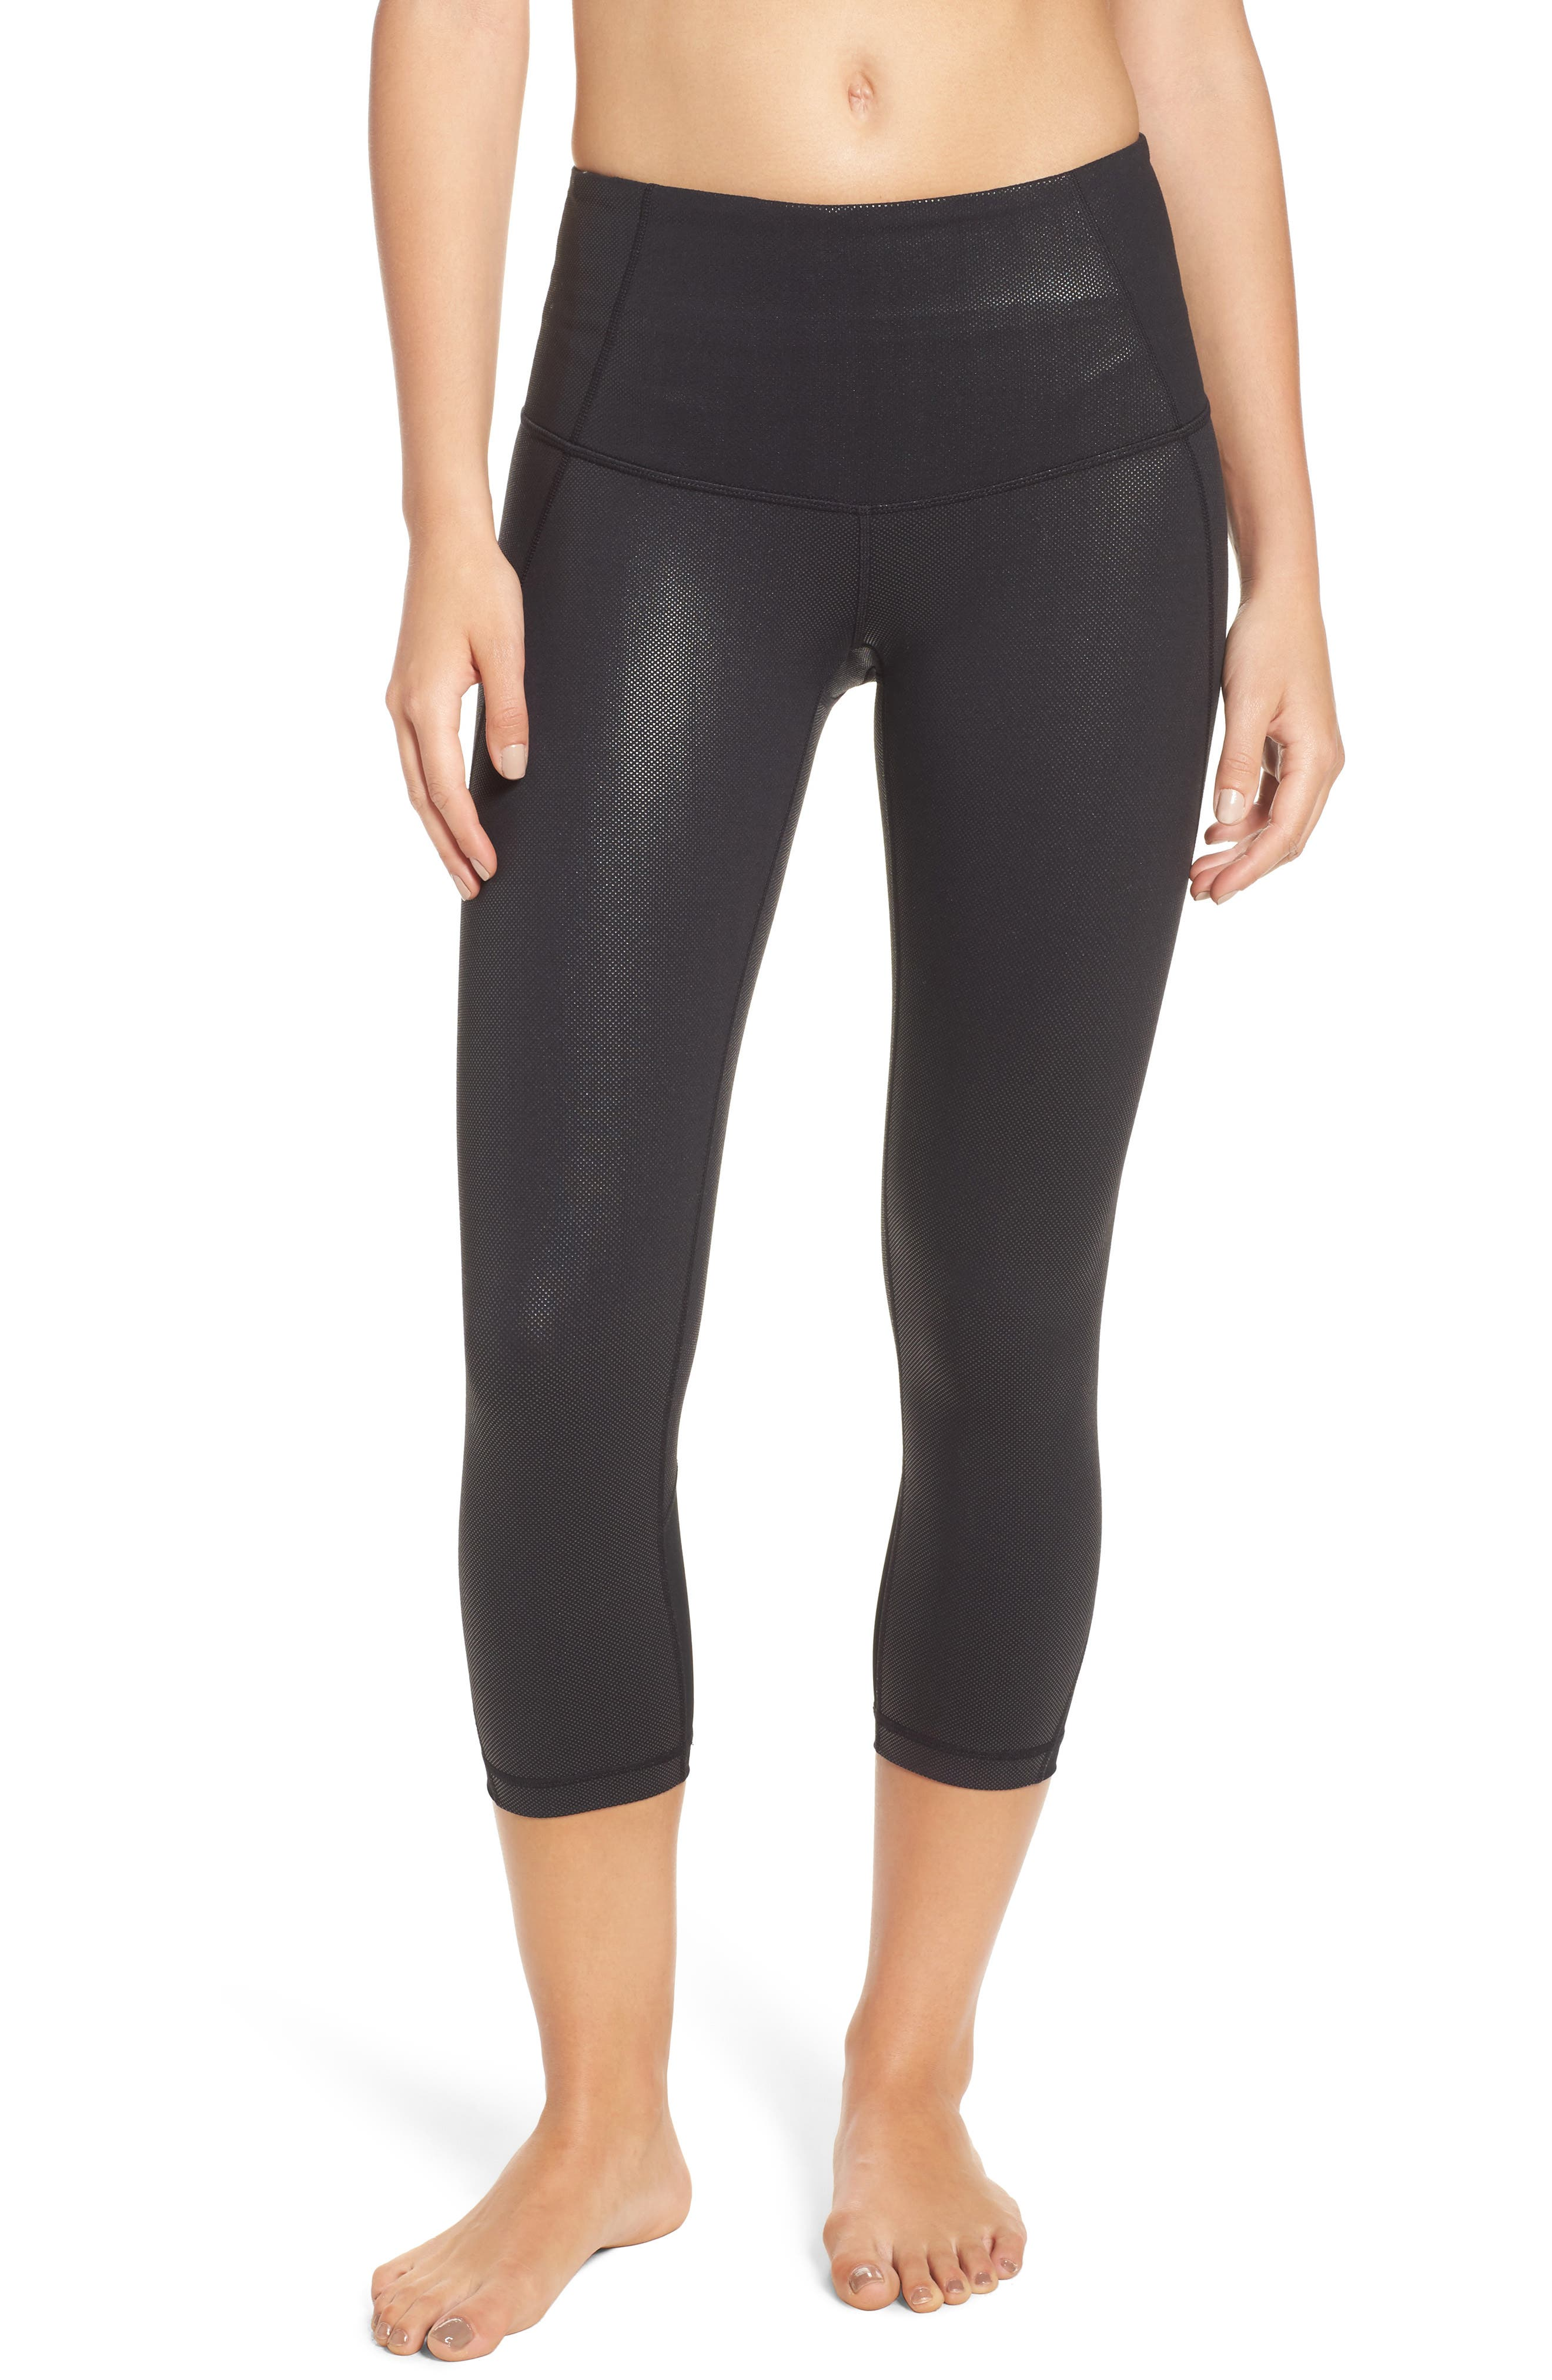 Hatha Crop Leggings,                         Main,                         color, Black Pearl Dot